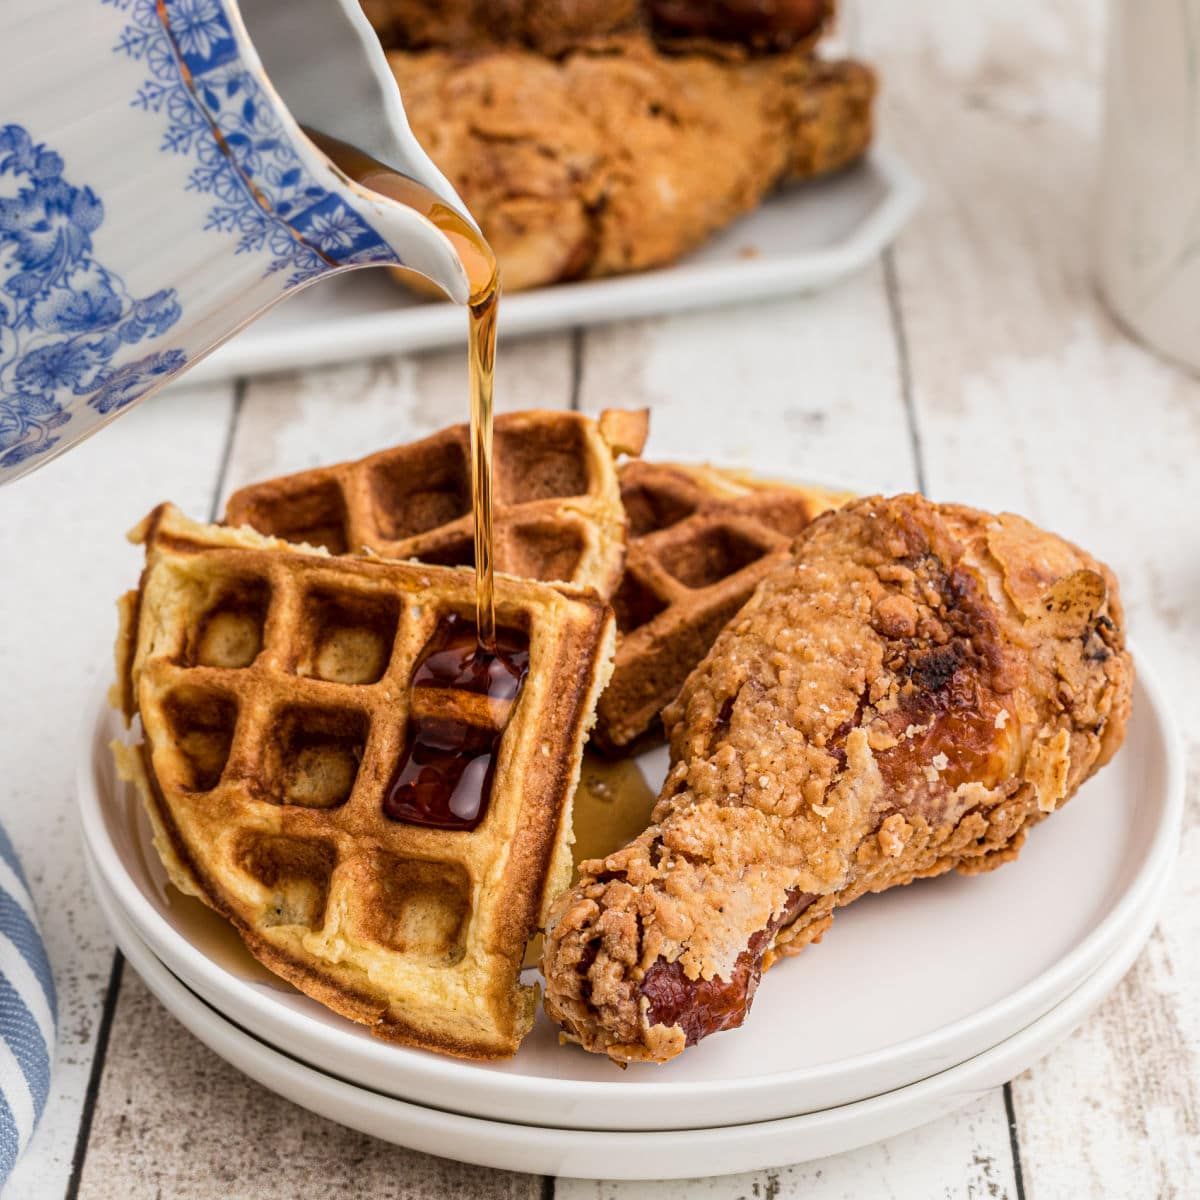 plate of fried chicken with waffles on the side with syrup being poured over the top